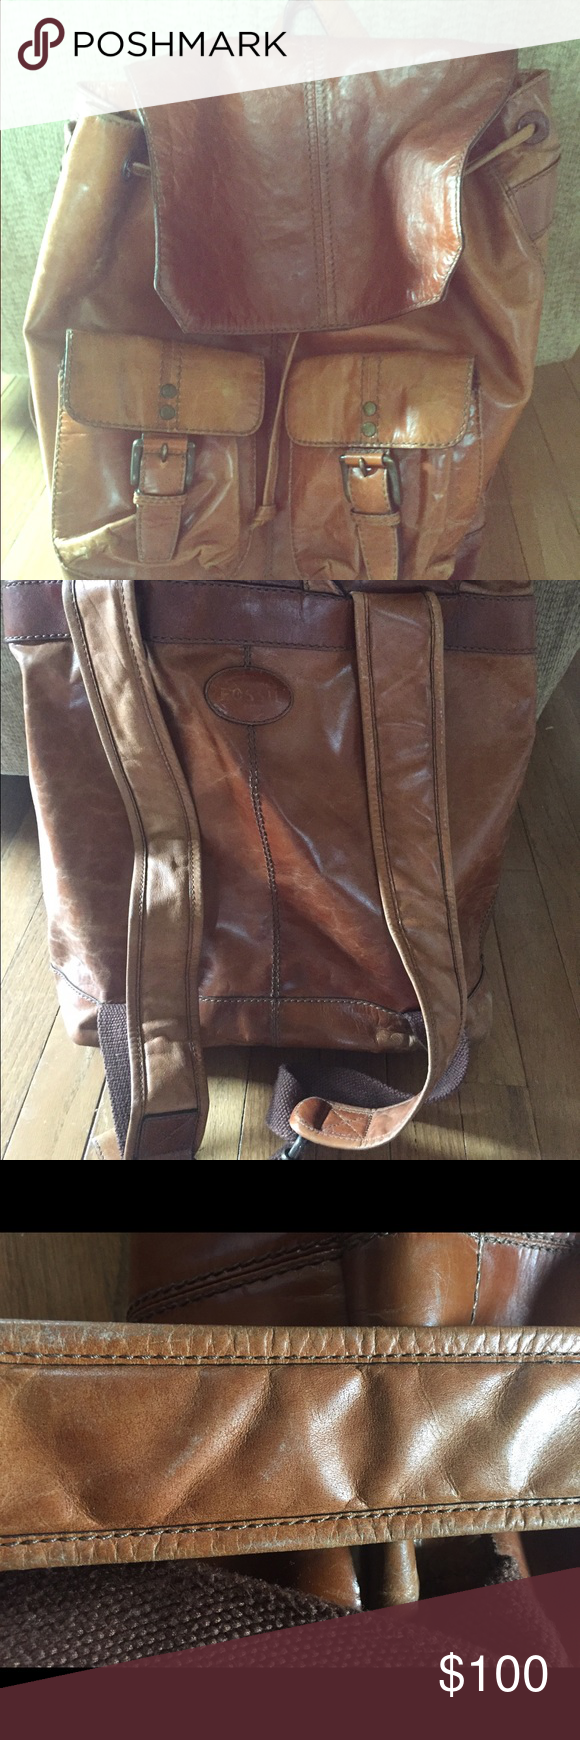 Fossil large brown leather backpack Large Fossil brand leather backpack. Good shape, with some slight wear and tear from use. Two large inner pockets, cell phone/accessory pocket, zipper pocket all inside. Outside has two pockets as well. Fossil Bags Backpacks